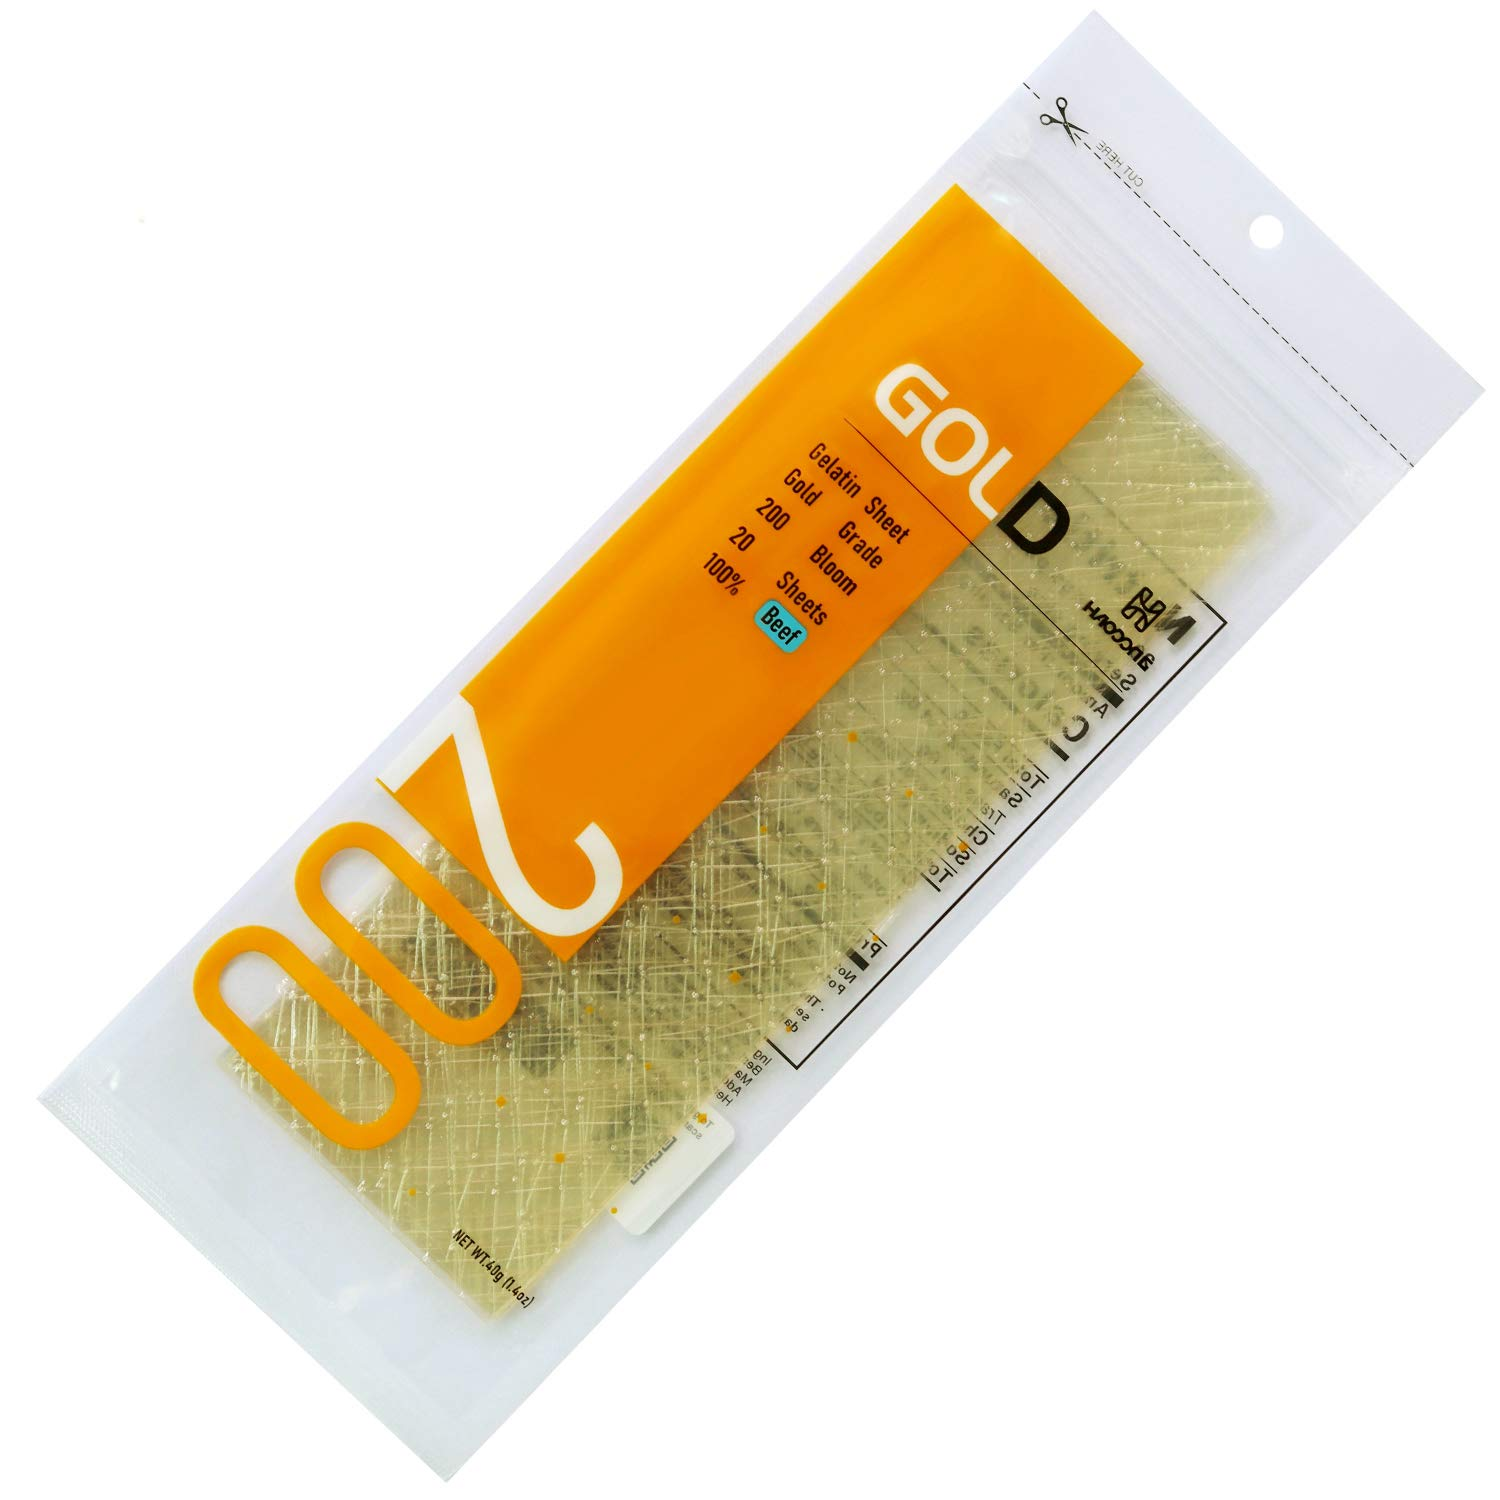 Haodong Beef Gold Leaf Gelatin Sheets - 200 Bloom (20Sheets, 40g) - Gelatin Leaves for Baking and Cooking Mirror Glaze Mousse Cake